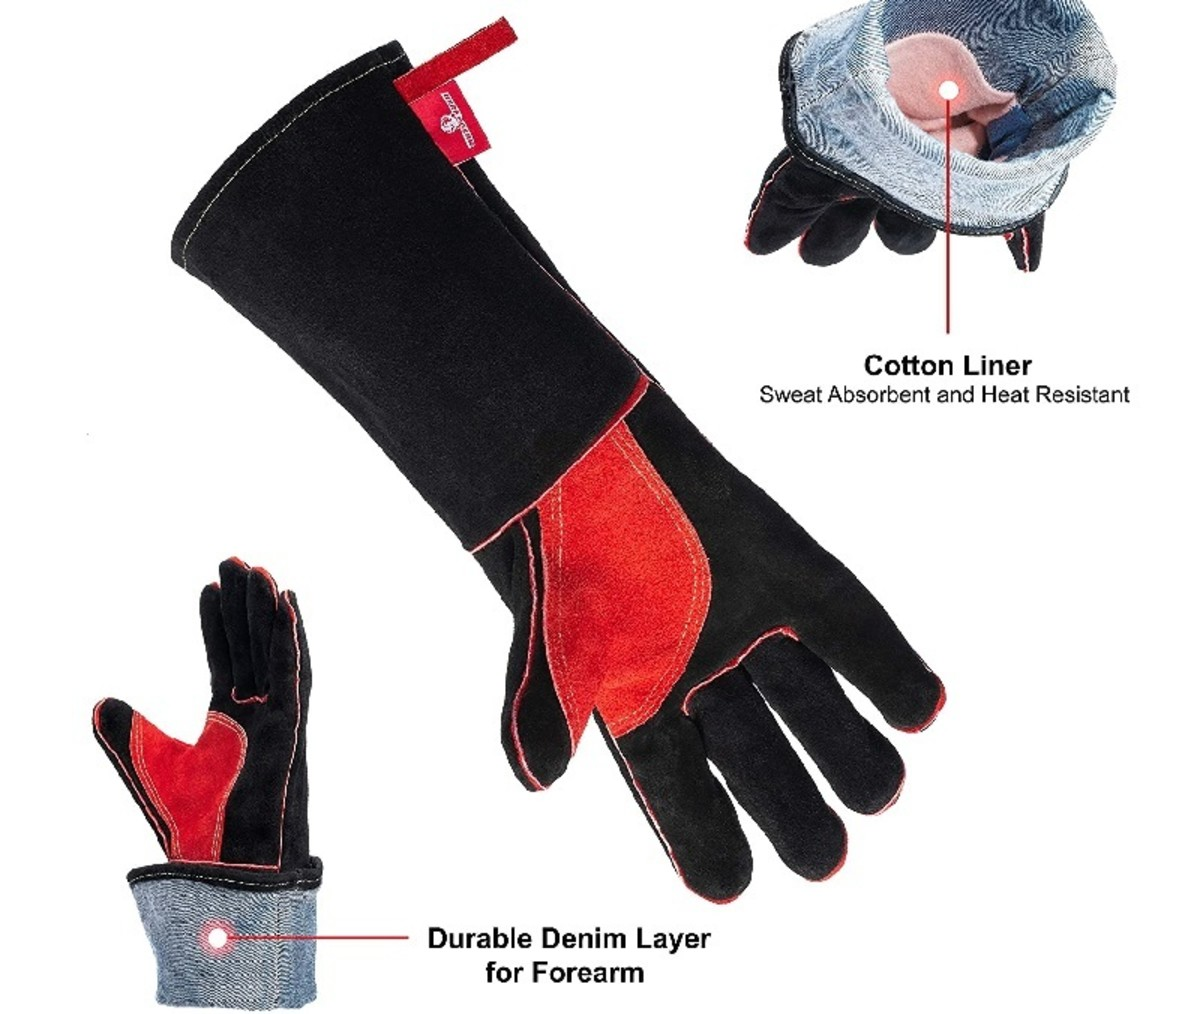 HearToGear welding gloves are fireproof and heat resistant. They protect your hands and forearms from fire burns.